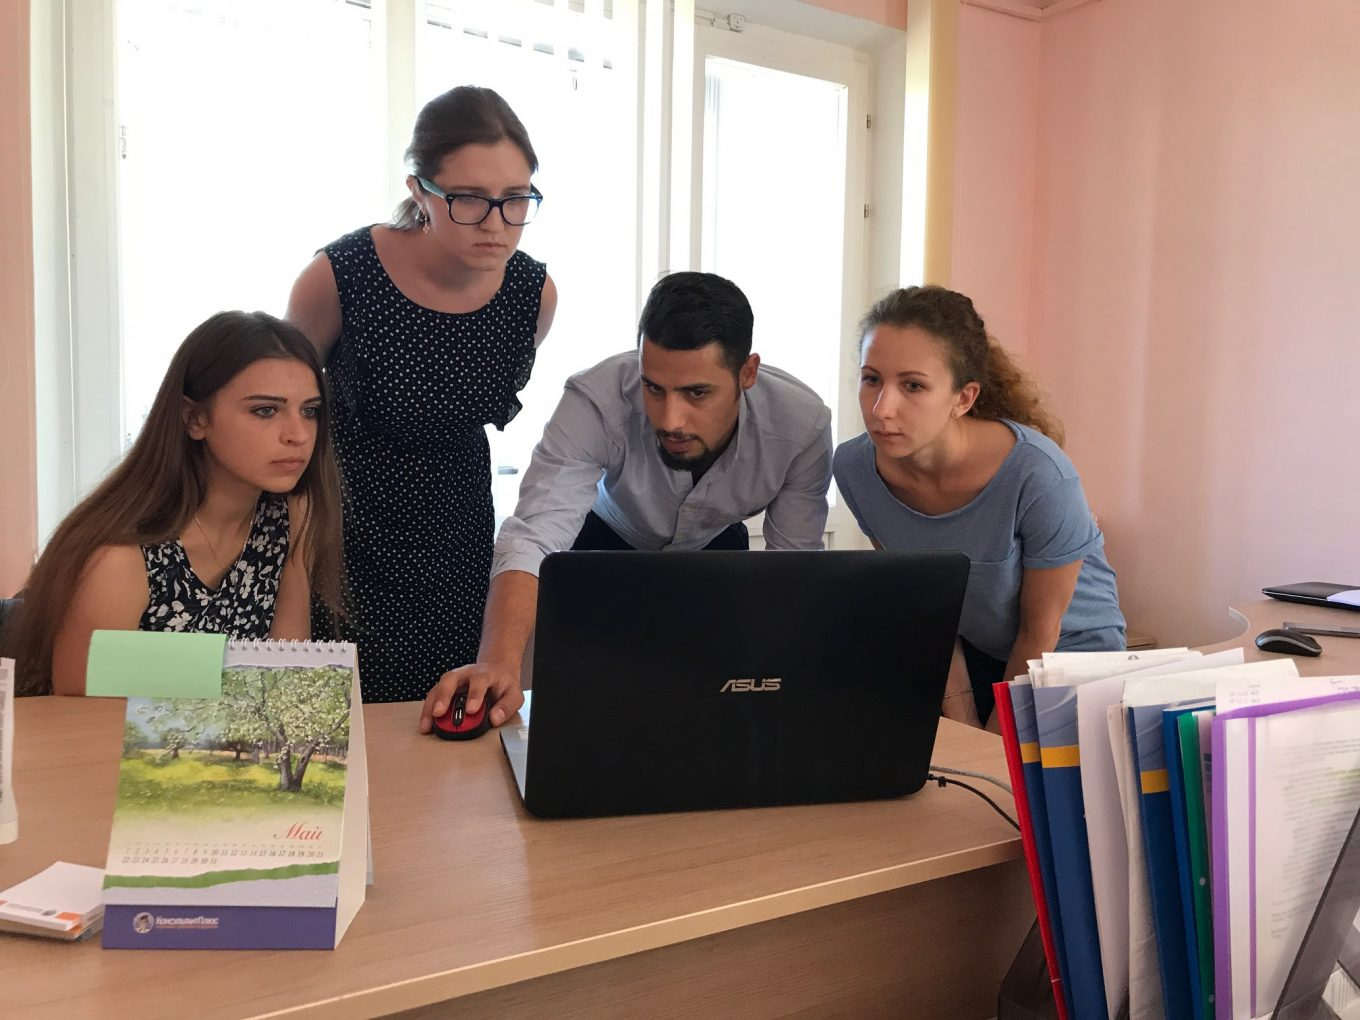 © UNHCR/ Charlotte Arnaud / A few days after the training, Mohammad Anini from the deployment team visited Volha Bakhur Julia Dvydova and Hanna Bystrova in the offices of the Refugee Counseling Service, to answer questions and support the new users.